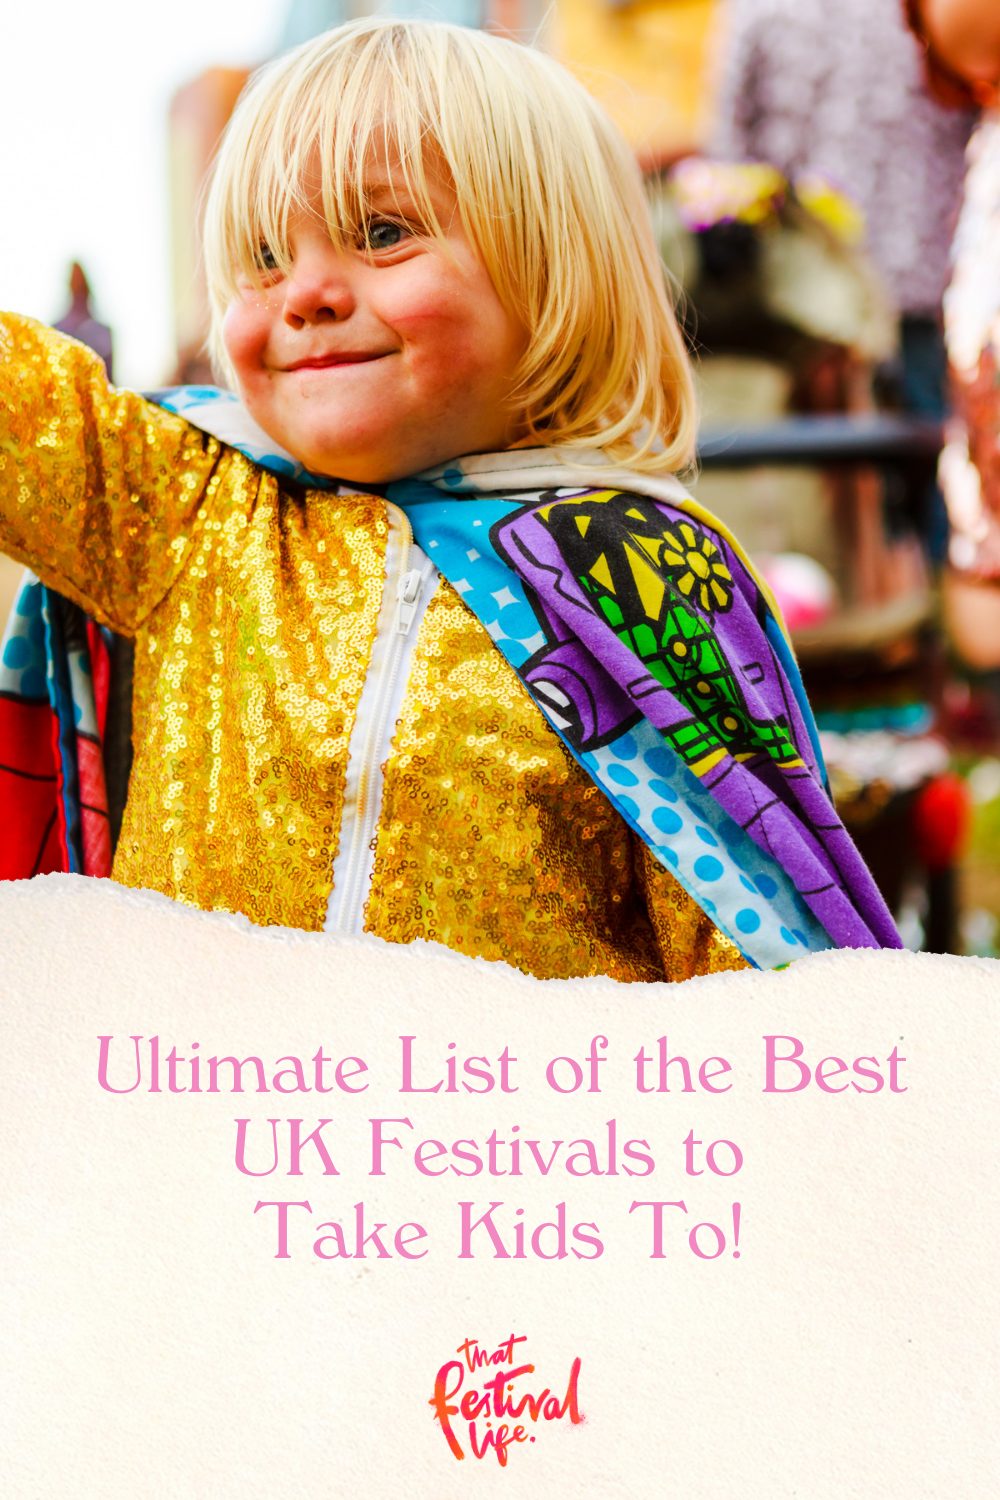 Ultimate List of the Best UK Festivals to Take Kids To